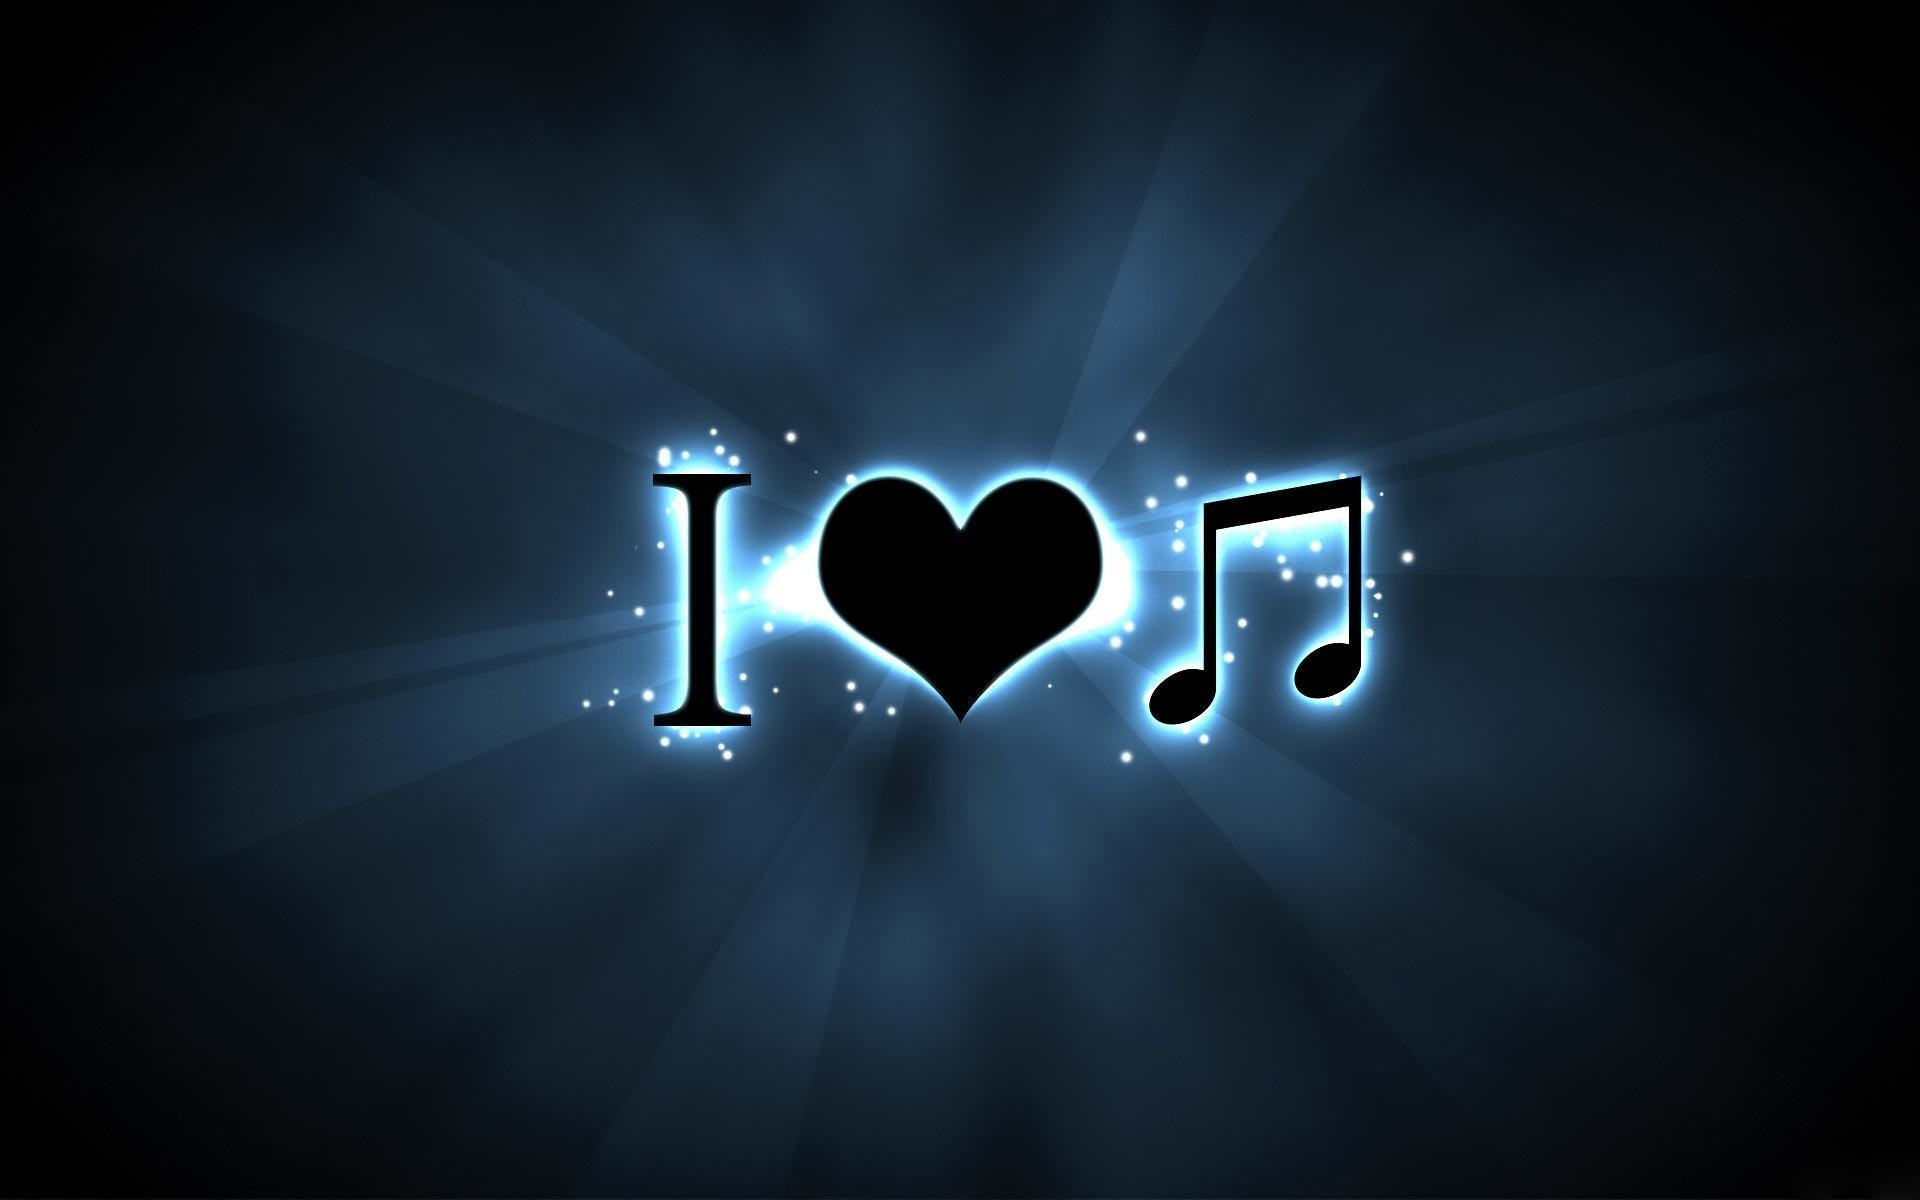 1920x1200 Music Images For Desktop Background 13 HD Wallpapers | www .